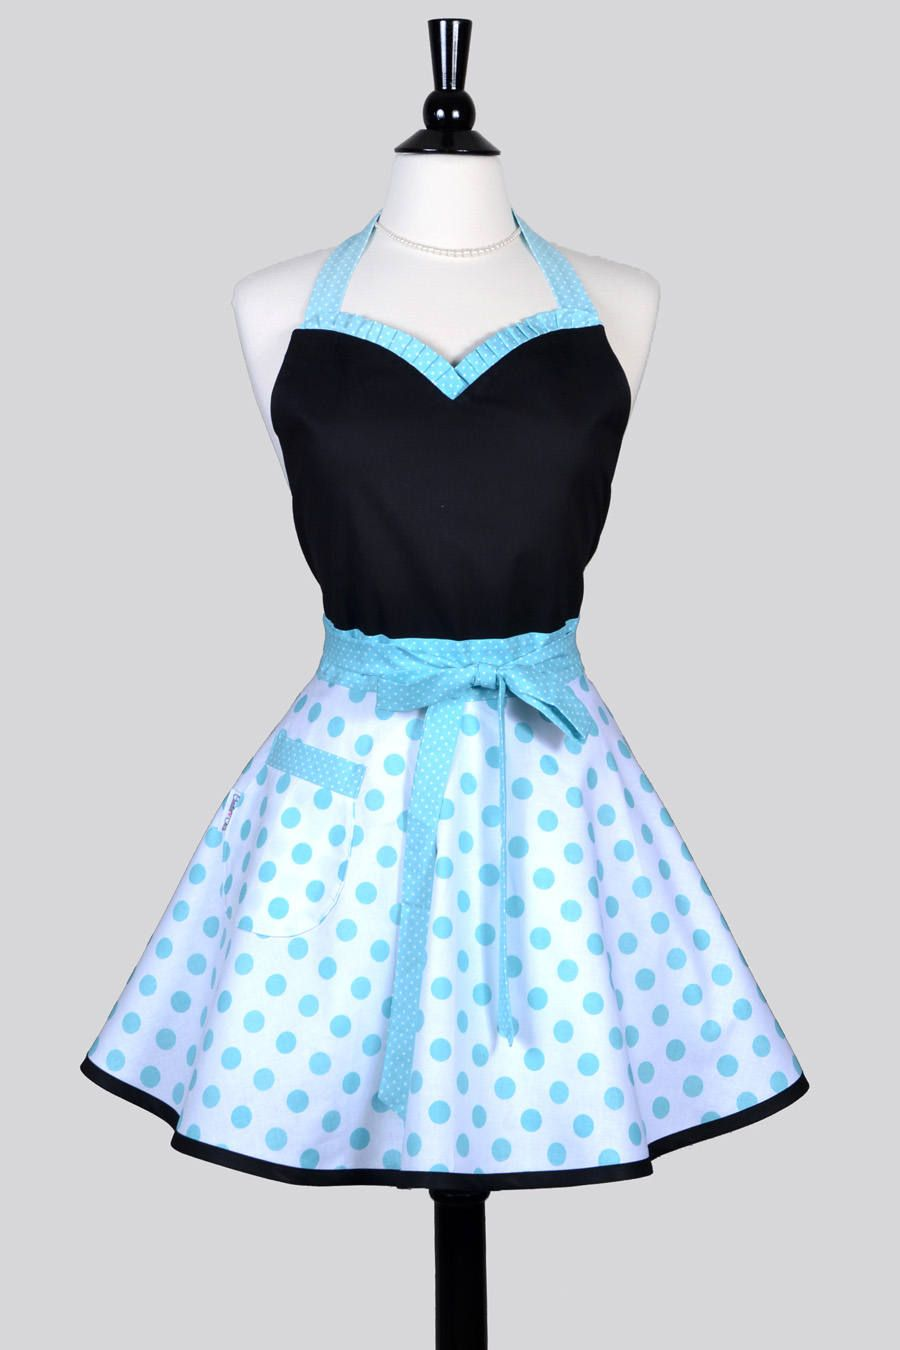 Sweetheart Pin Up Womans Apron . Aqua White Polka Dots Retro Vintage ...